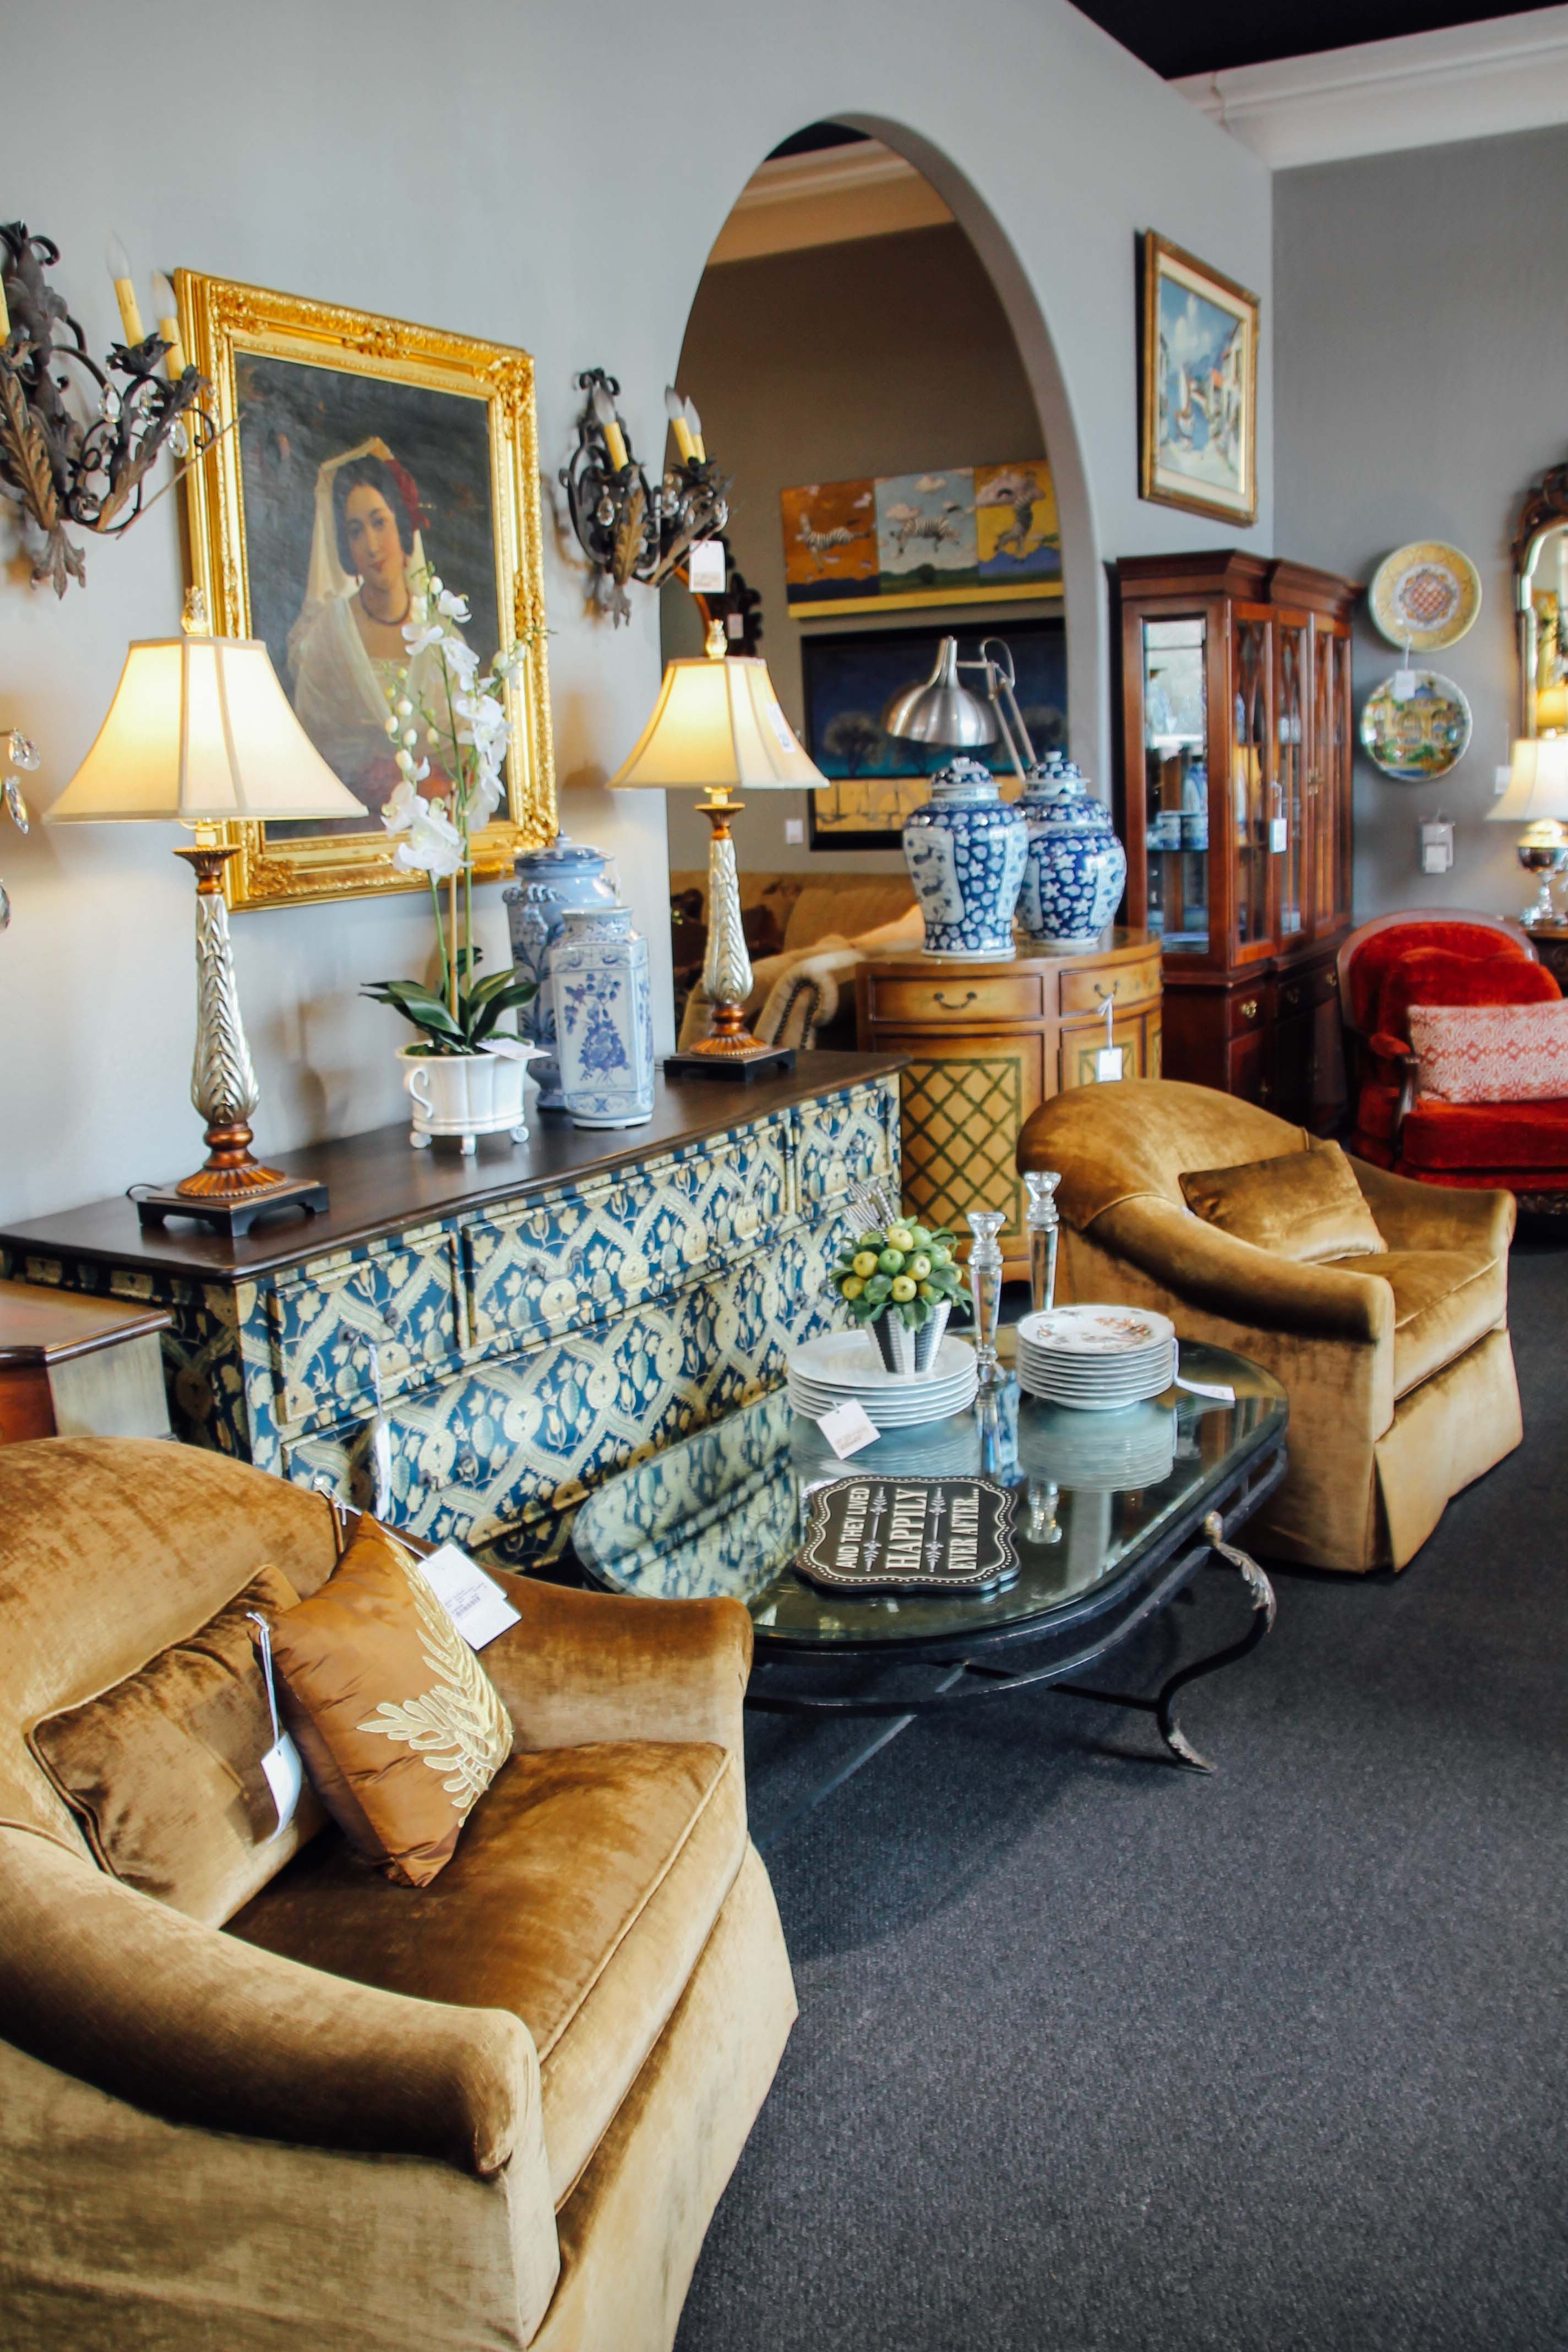 Living Room Decor And Furniture Found At Avery Lane Fine Consignment In Scottsdale Arizona Consignment Furniture Furniture Rooms Home Decor